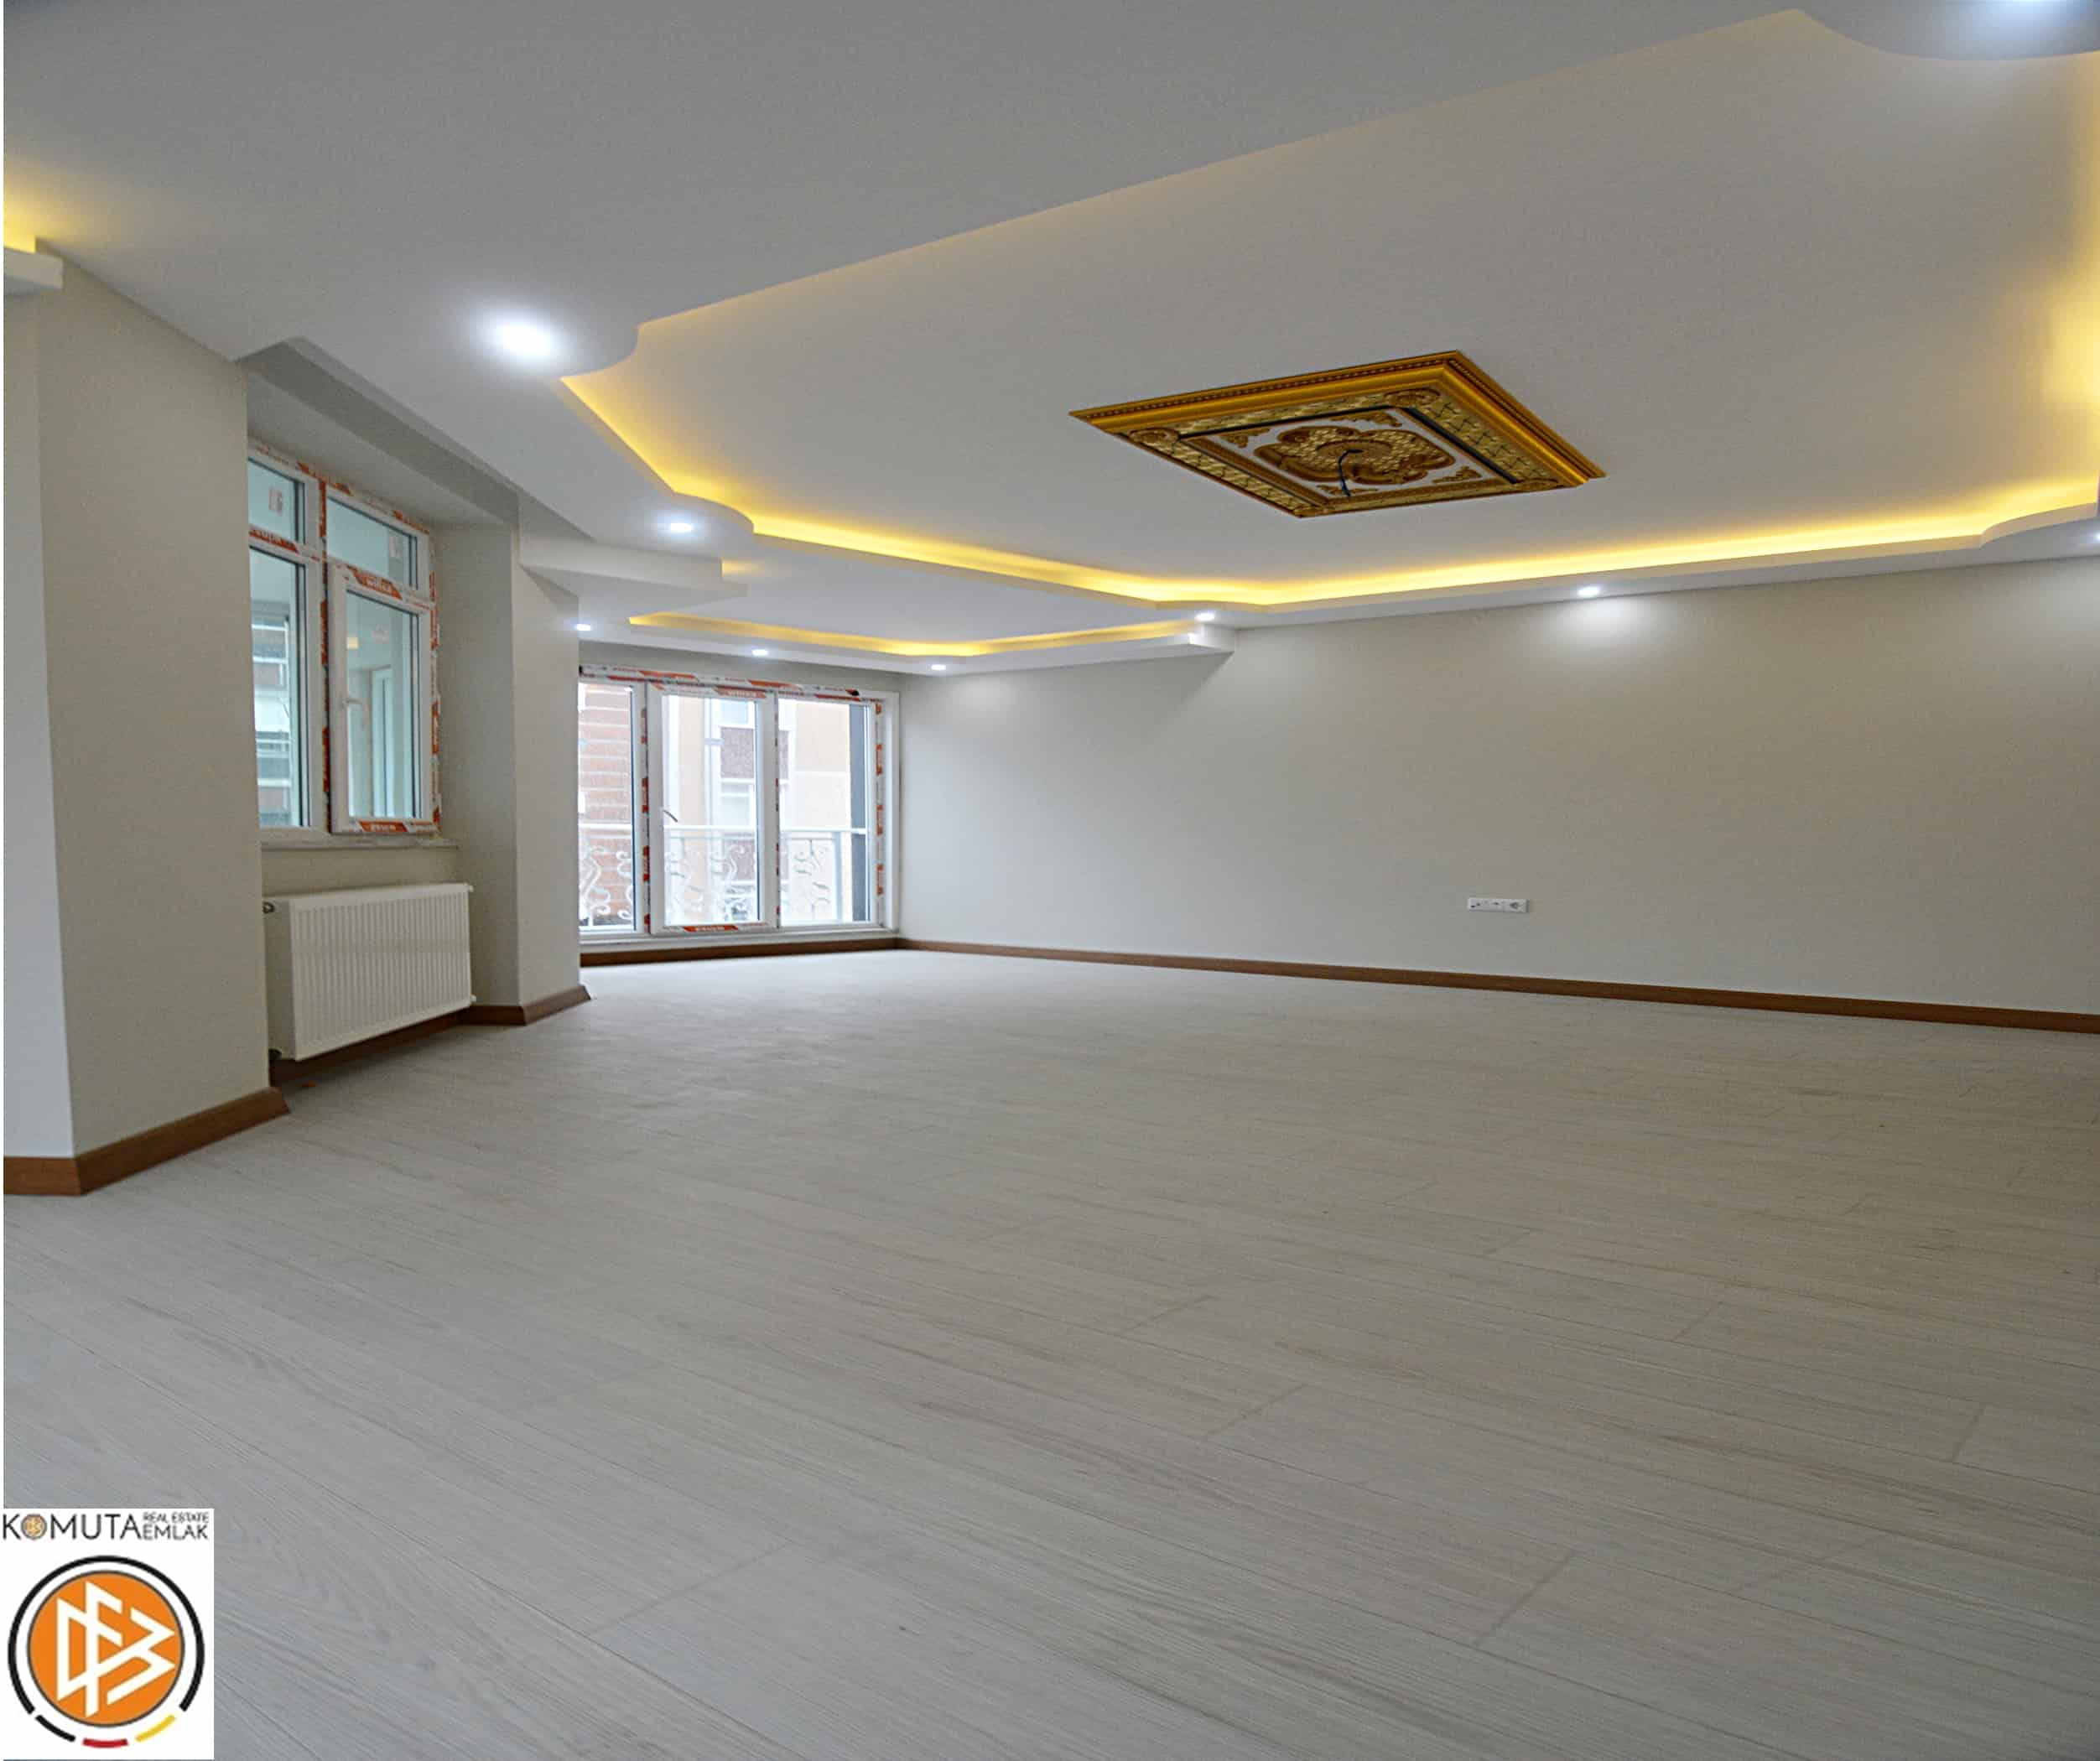 Near Metrobus 2+1 Apartment For Sale In Istanbul (Turkey